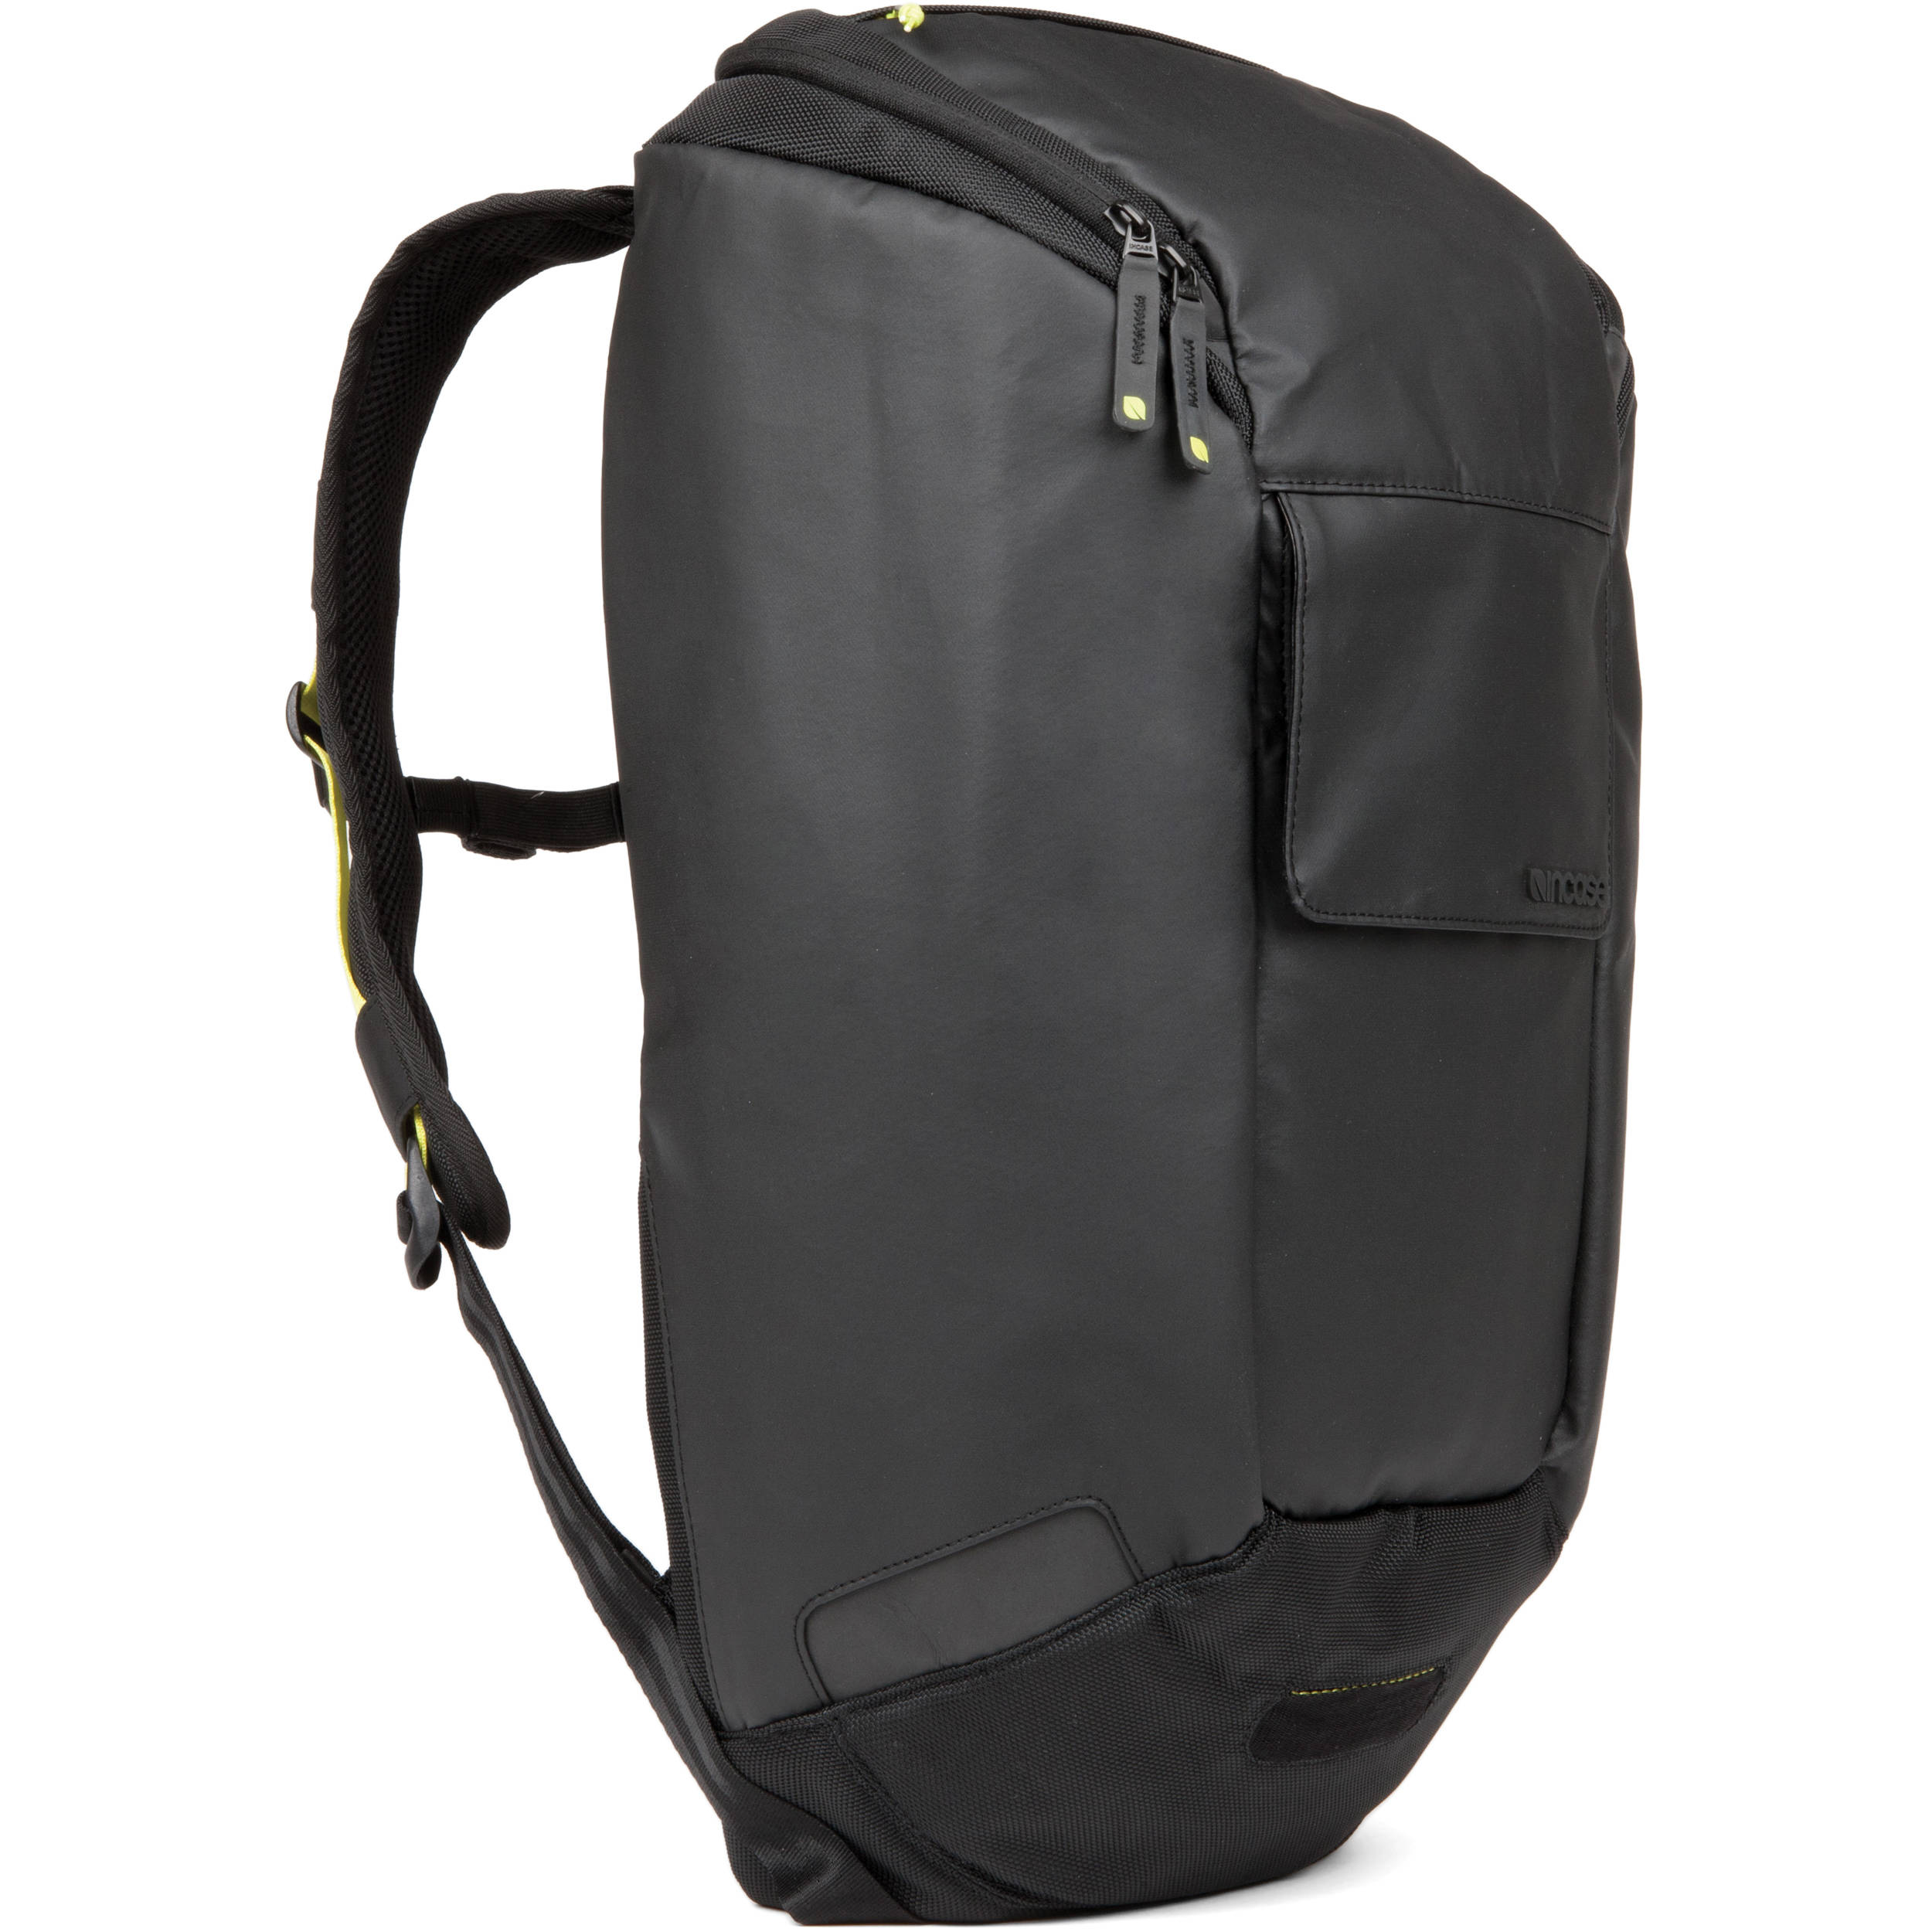 Largest Laptop Backpack – TrendBackpack